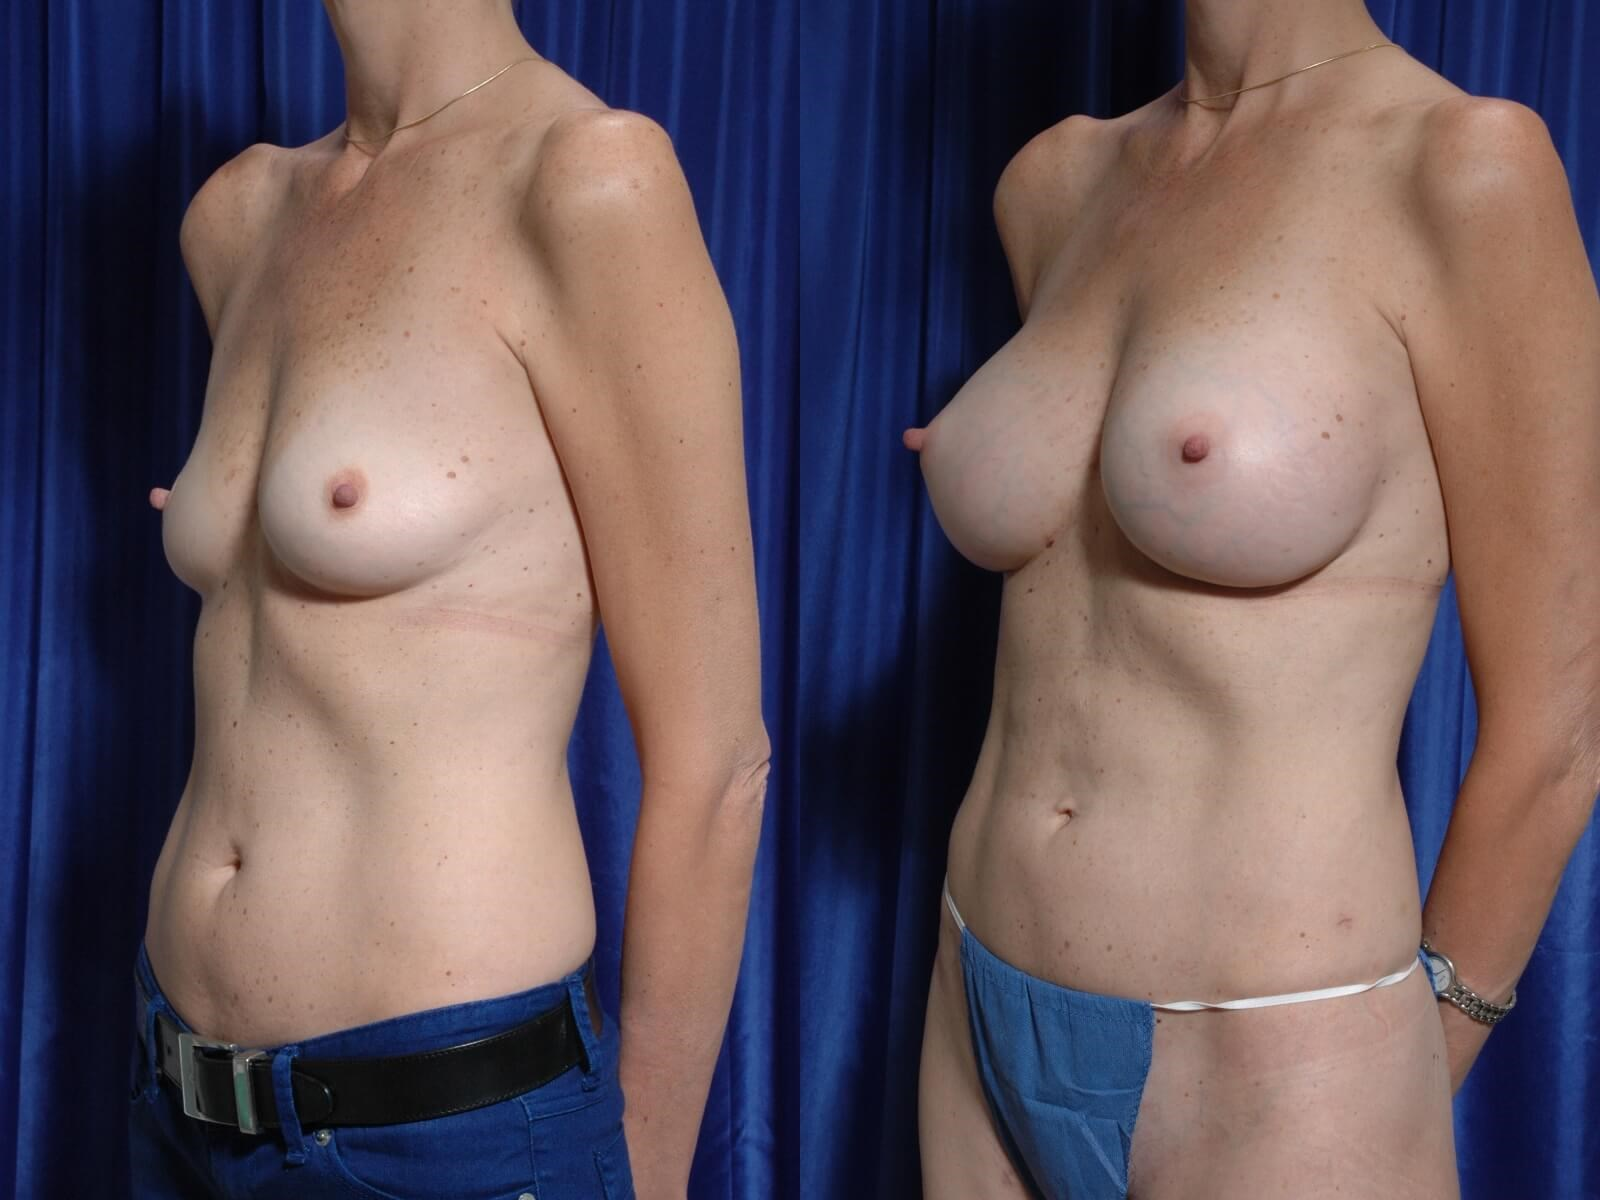 Fat to Breasts w/ Implants Side View Comparison